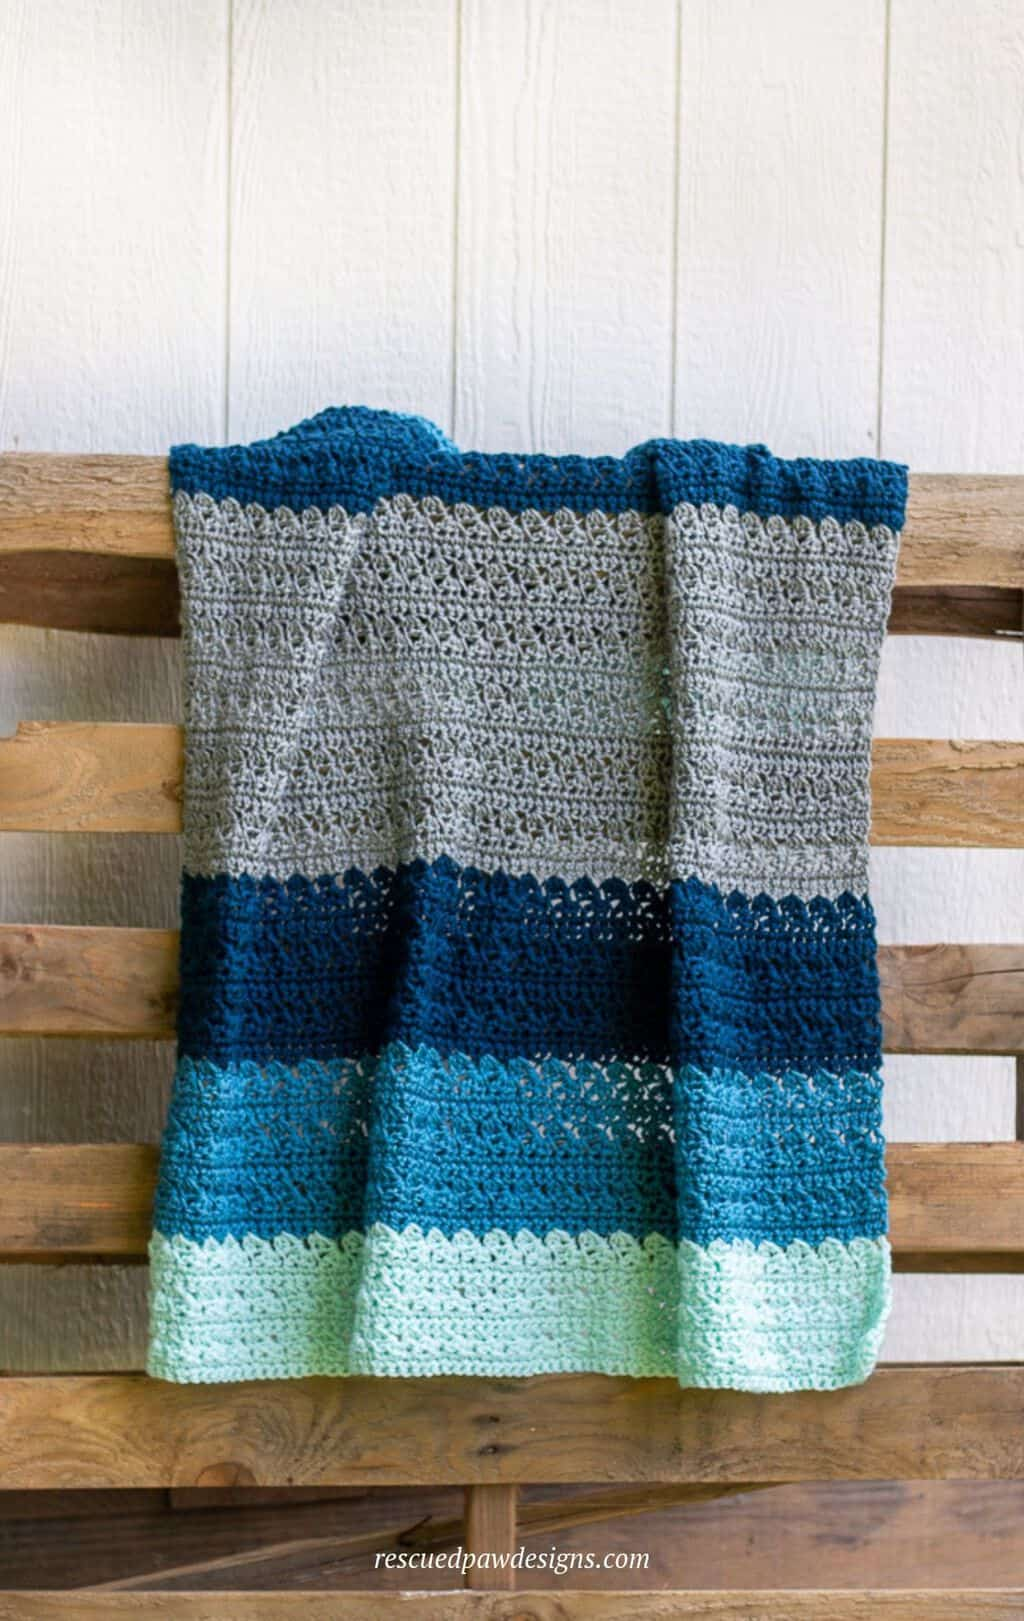 Crochet Blanket pattern that is perfect for baby shower gifts